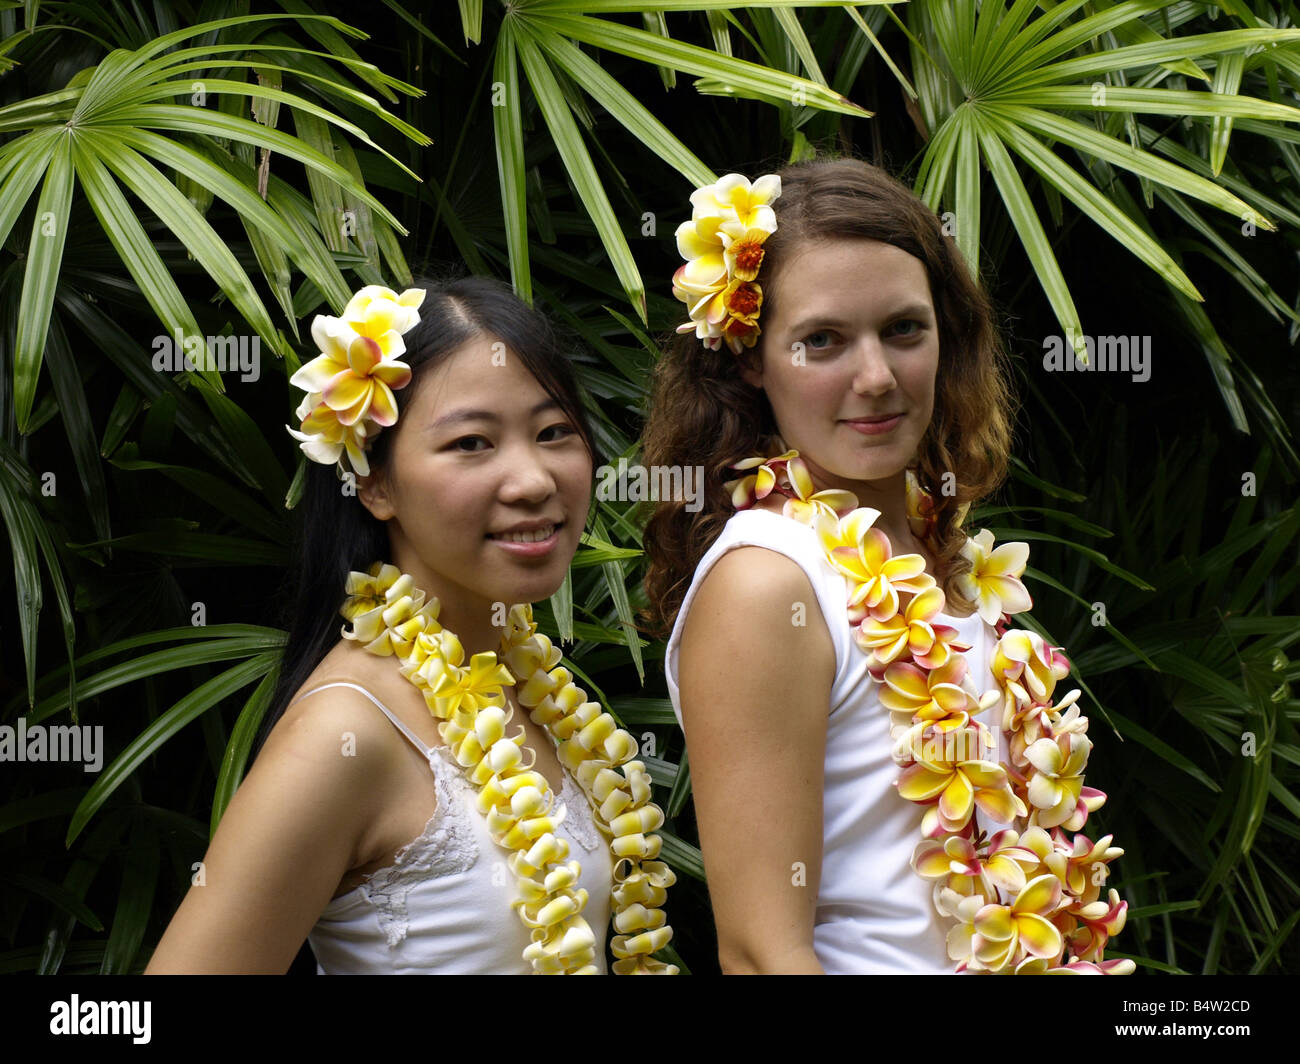 Two girls with leis - Stock Image